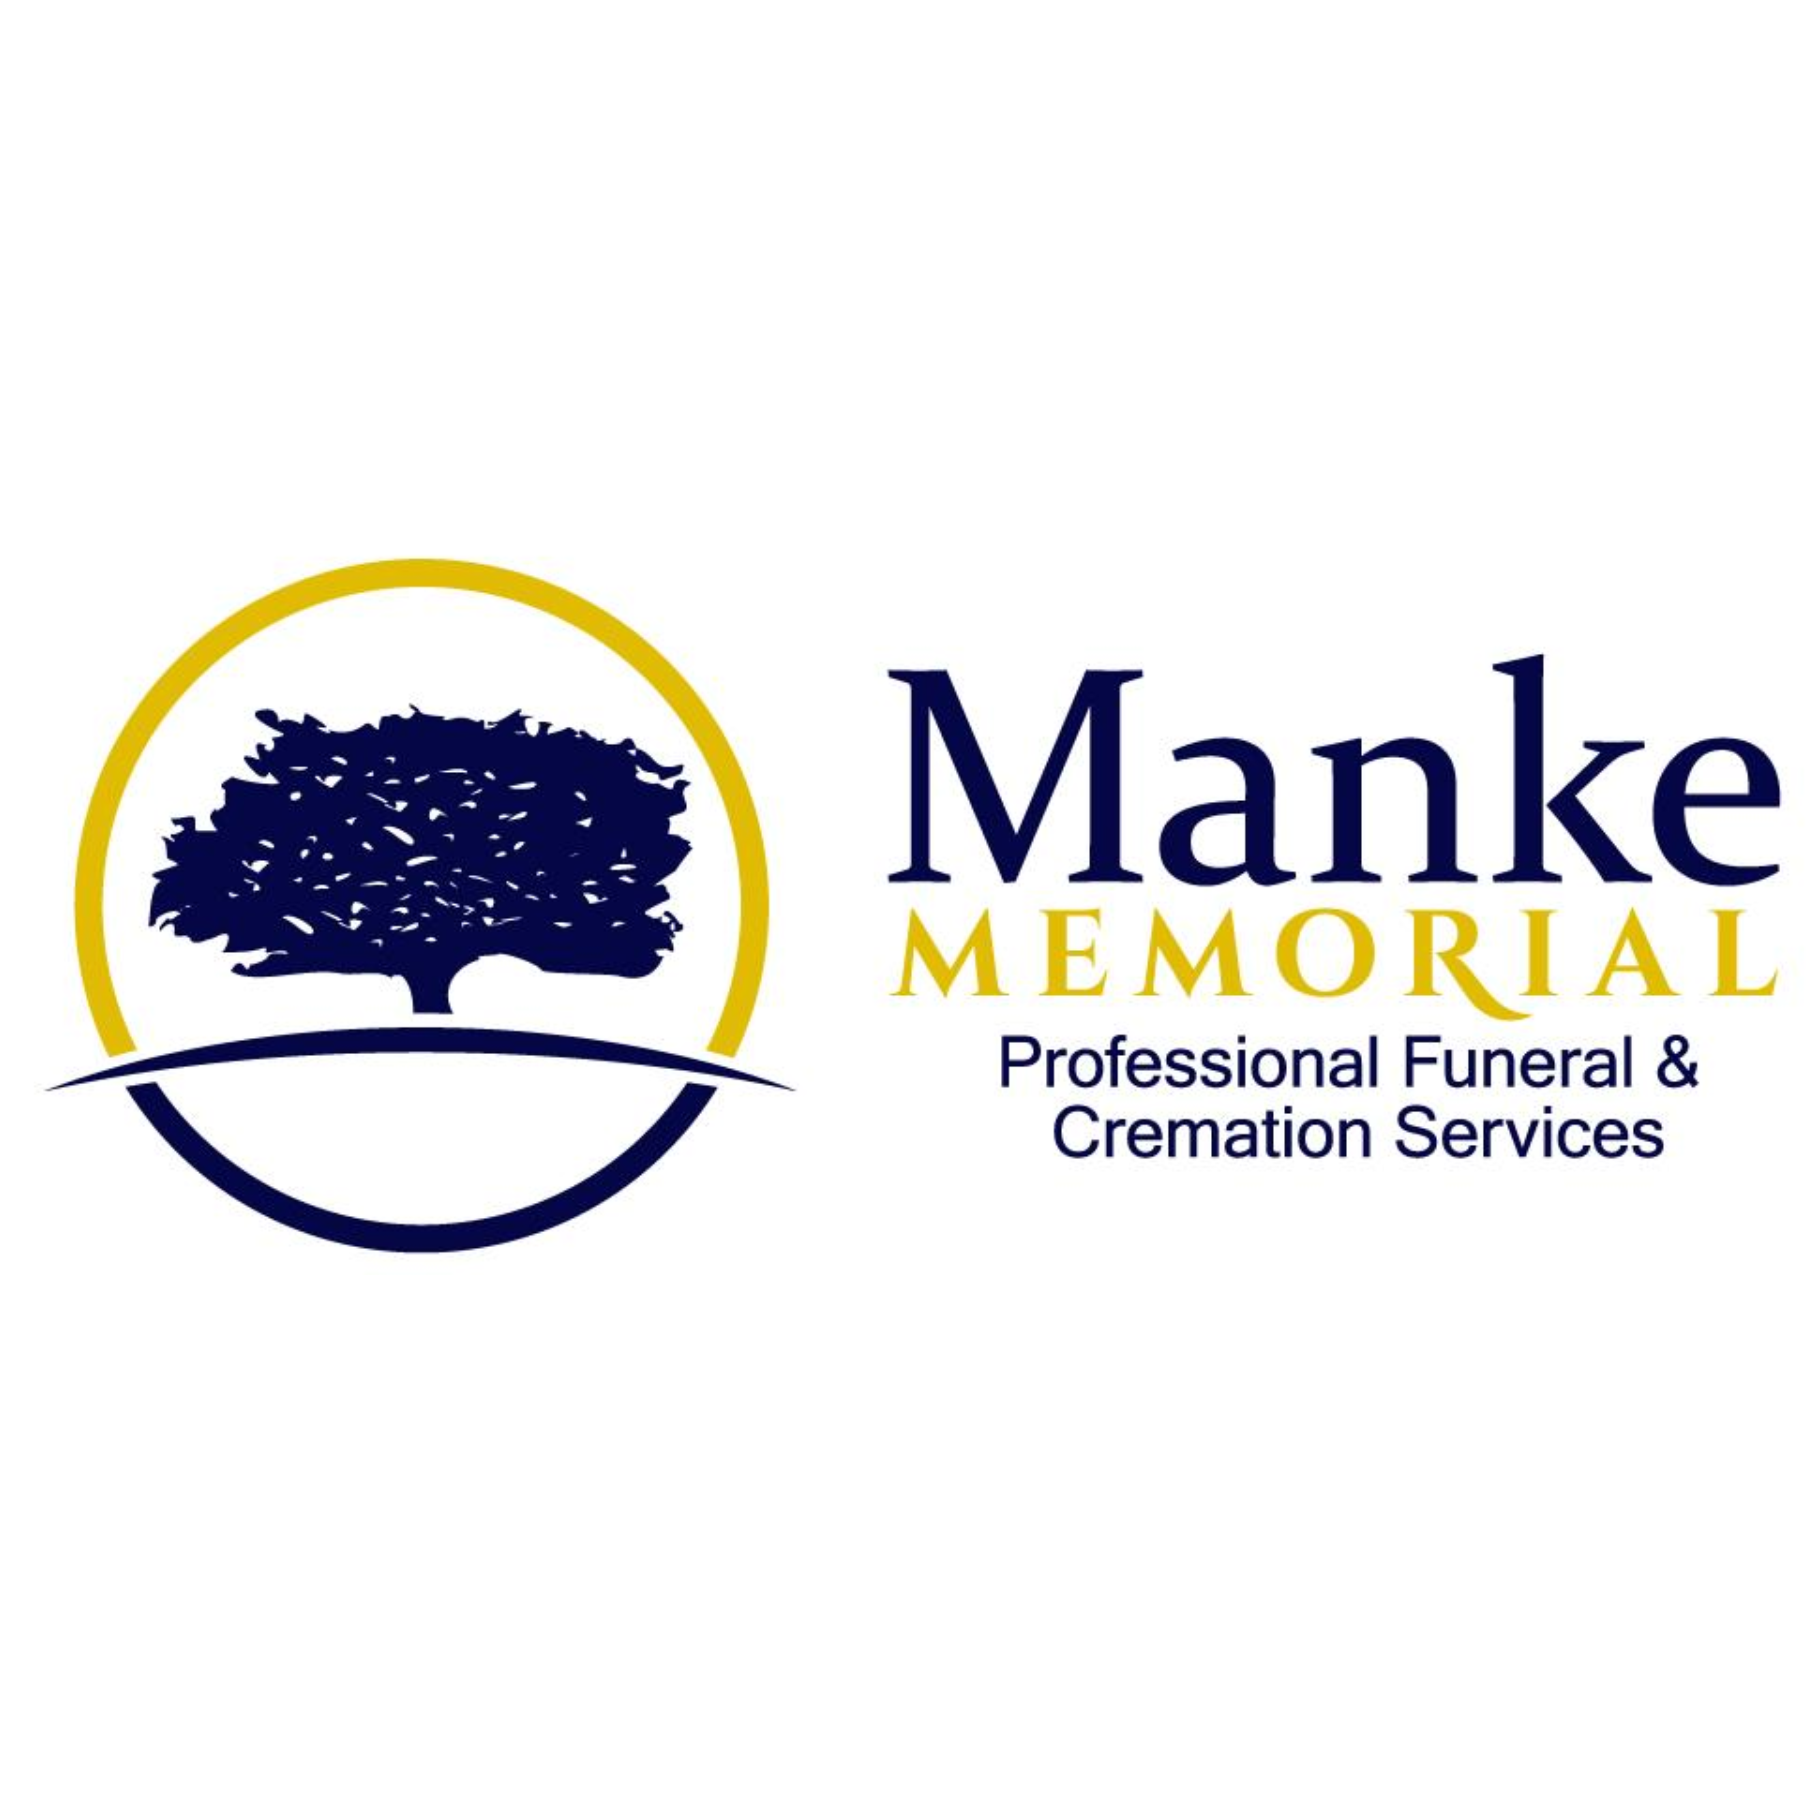 Manke Memorial Funeral & Cremation Services